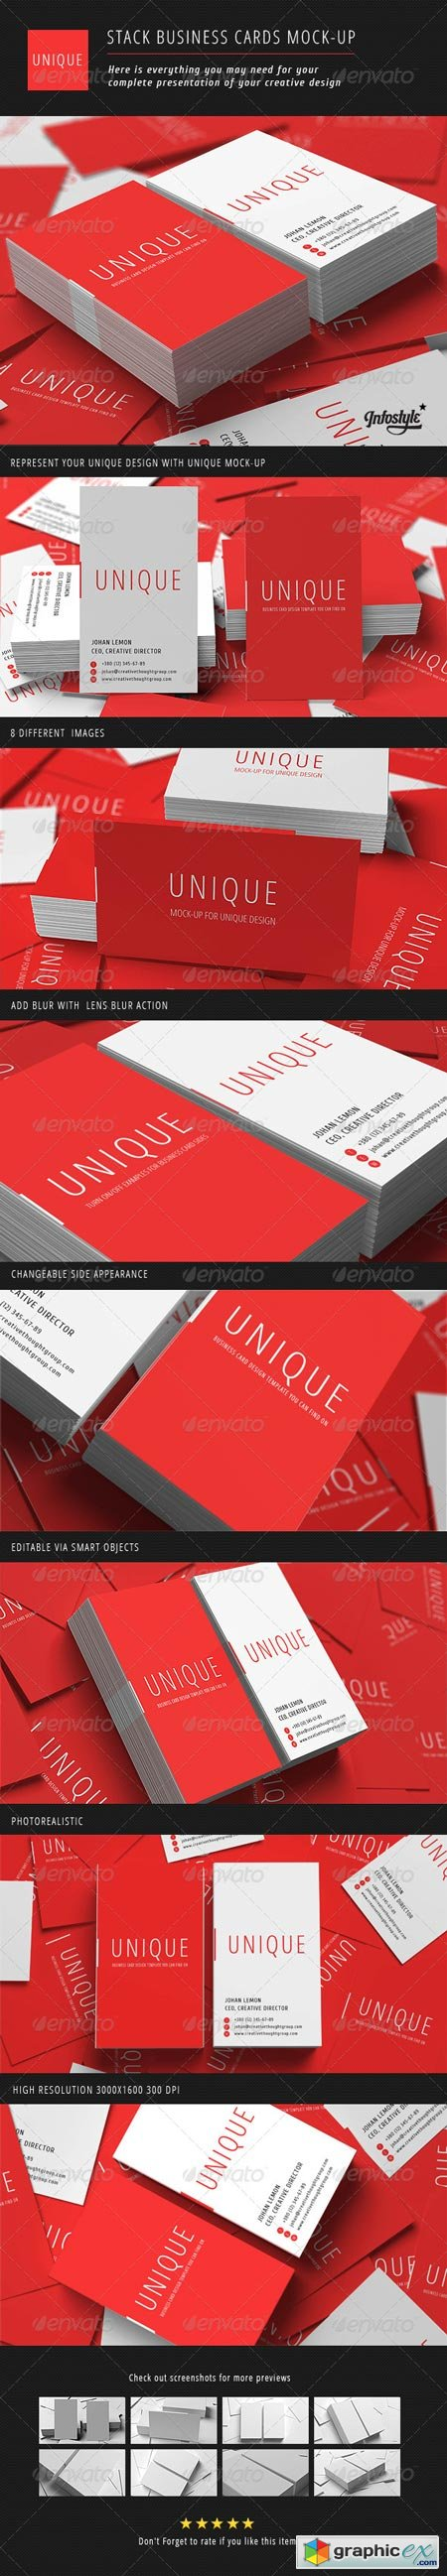 Stack Business Cards Mock-Up 3063488